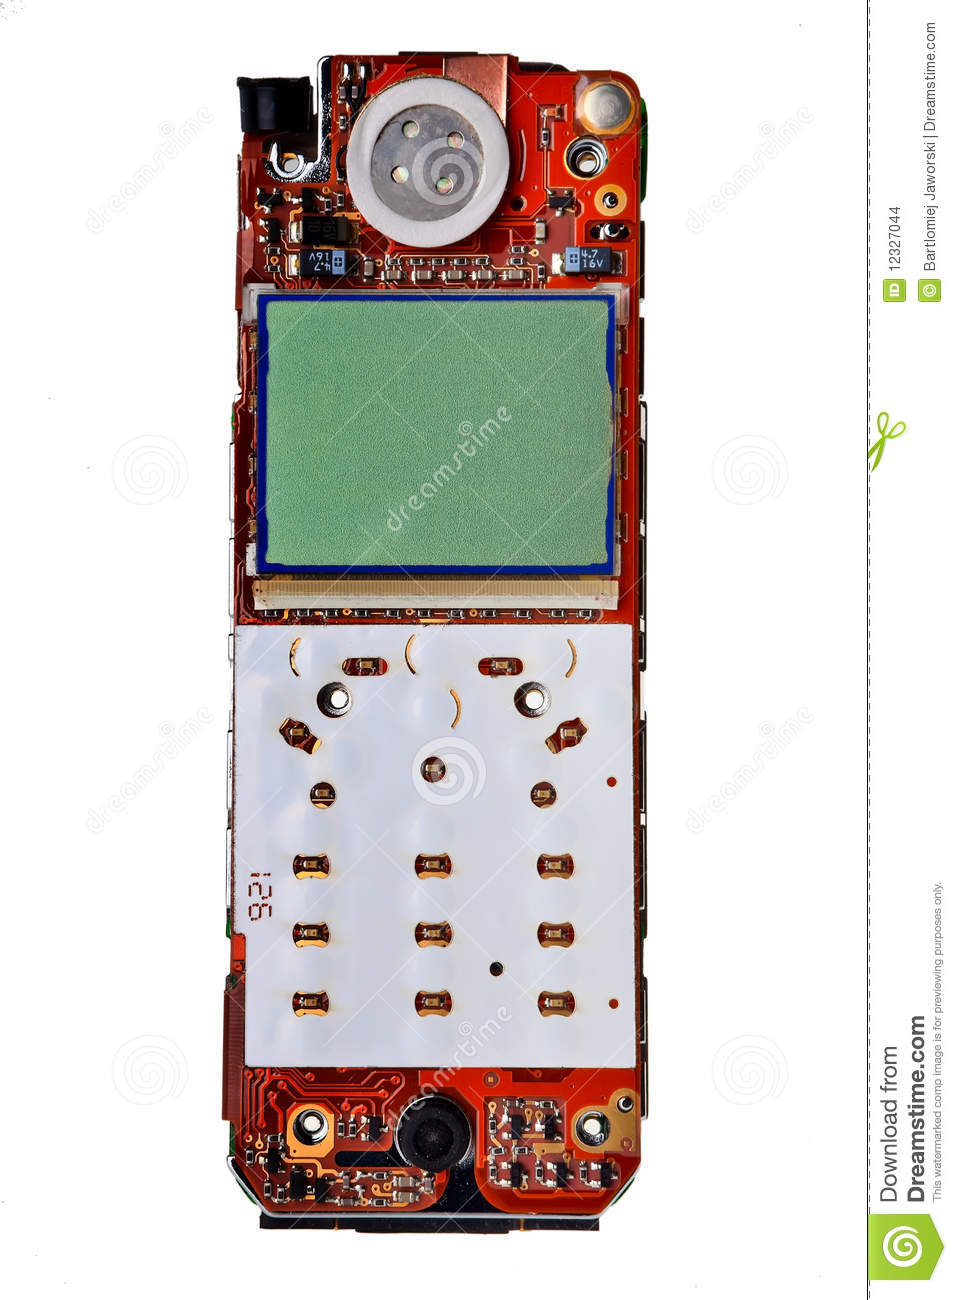 Digital Mobile Phone Pcb Stock Photo Image Of Board 12327044 Cell Boardmobile Circuit Printed With Lcd Display